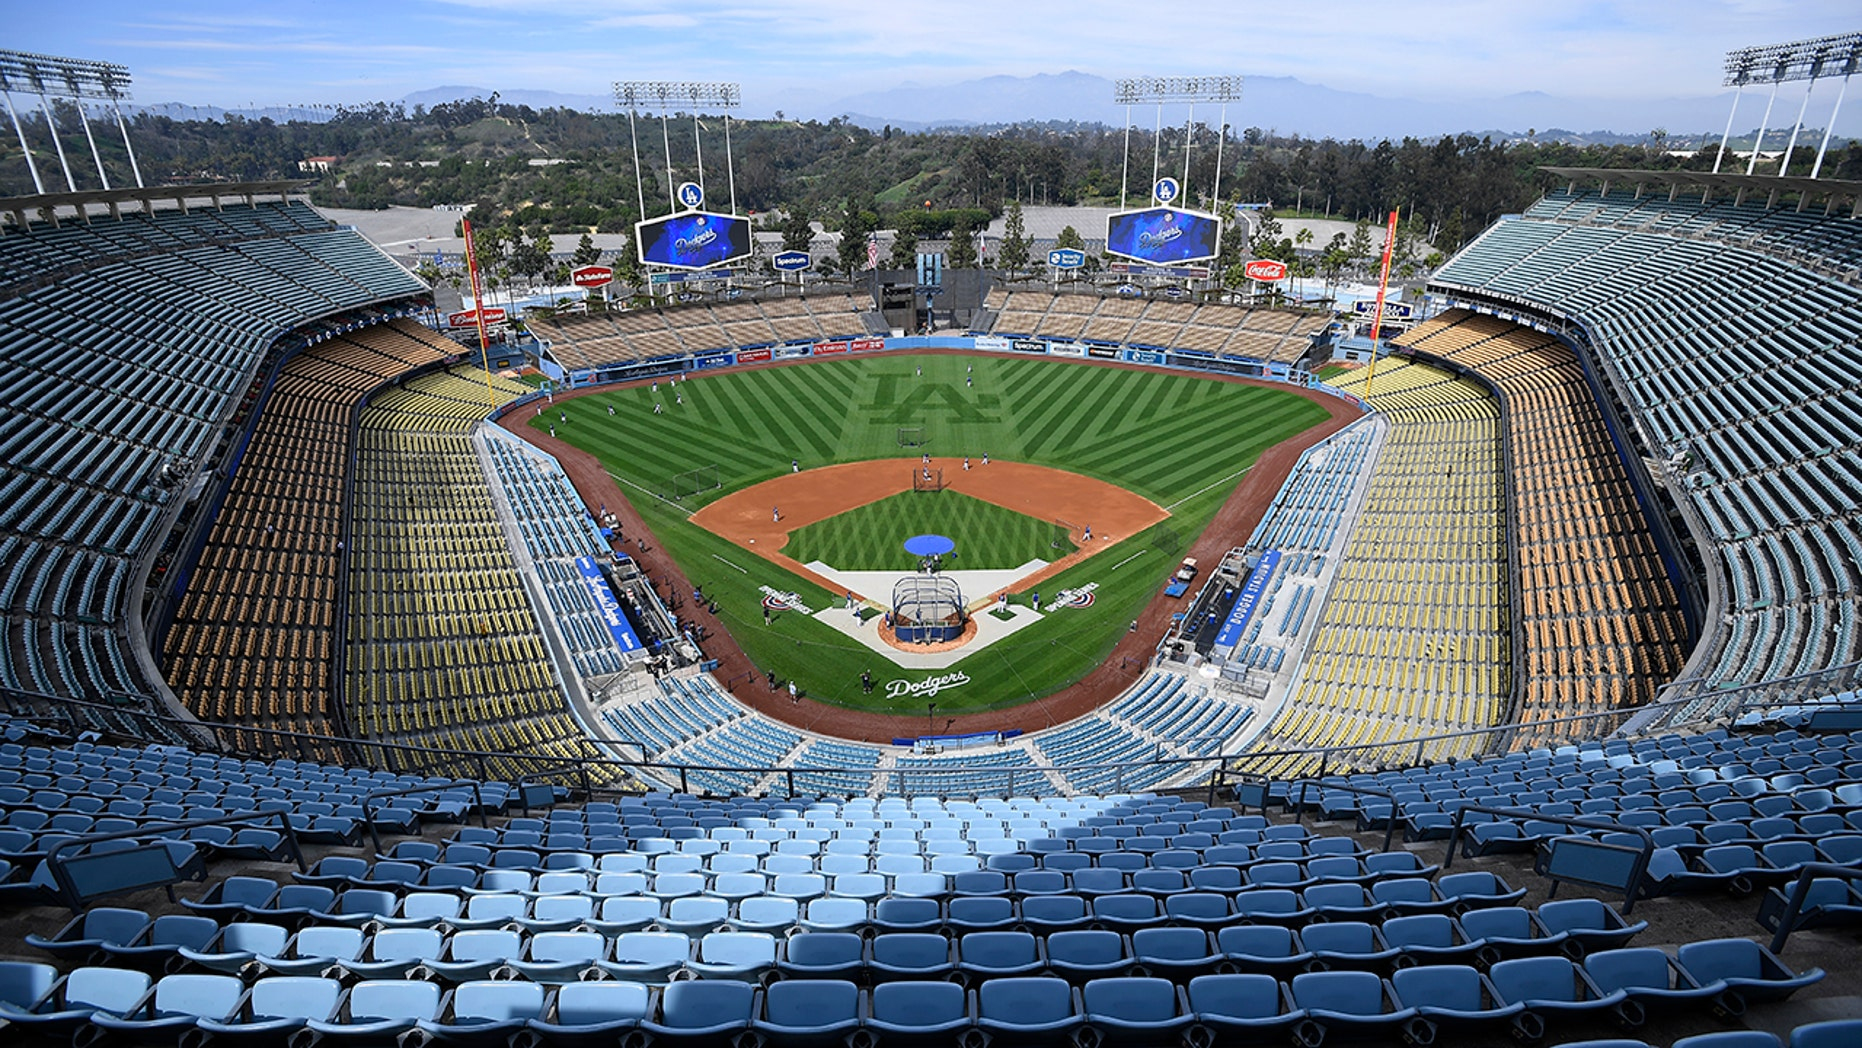 Fan struck in head by batted ball at Dodgers game dies